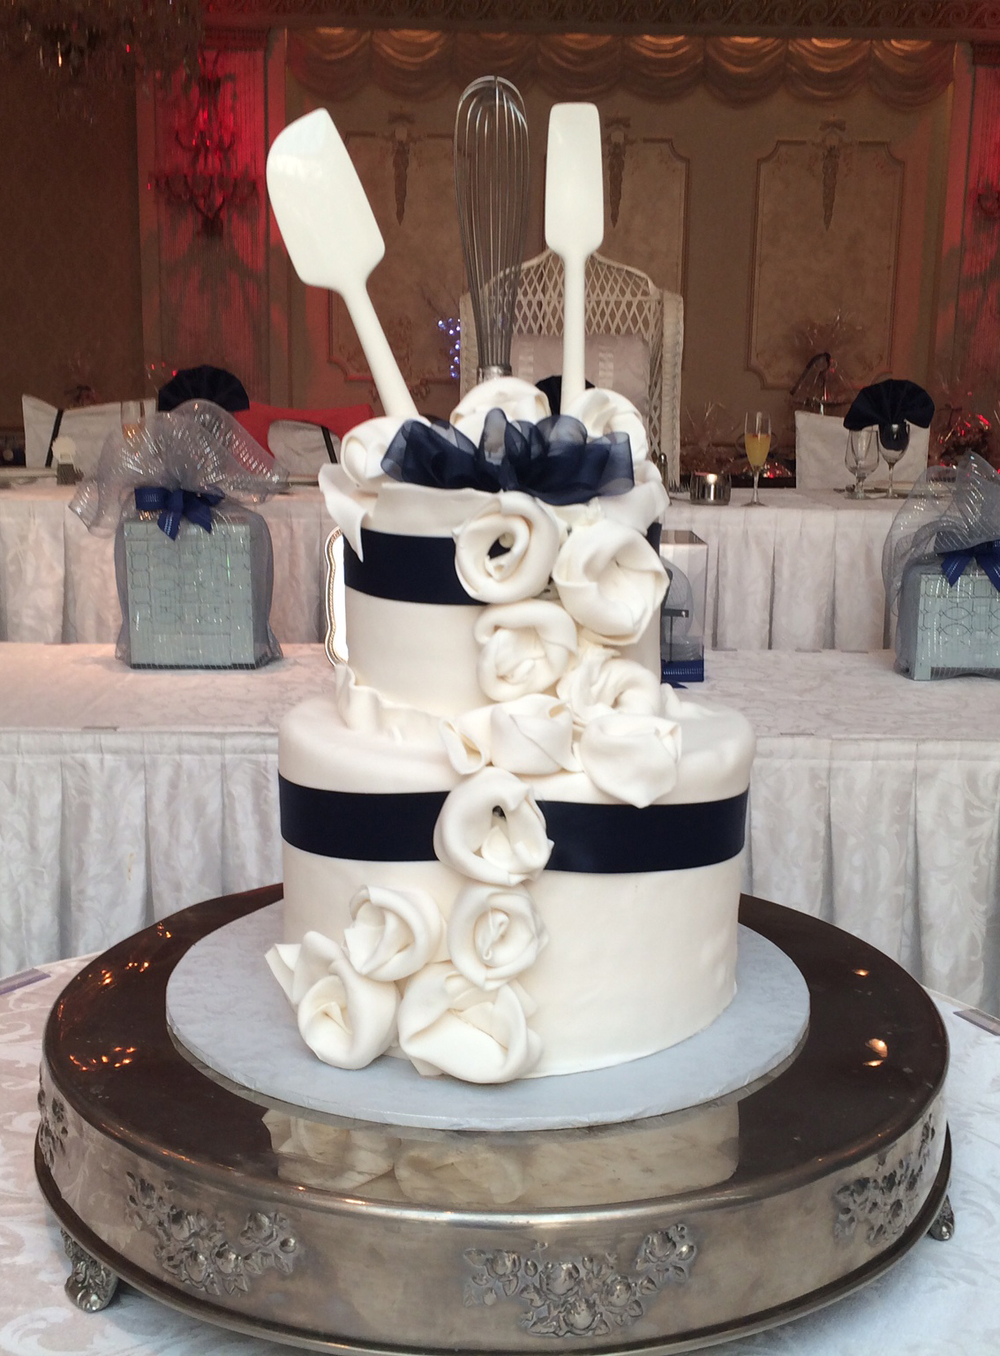 Double Tiered Rolled fondant Wrapped with Towels & Ribbons